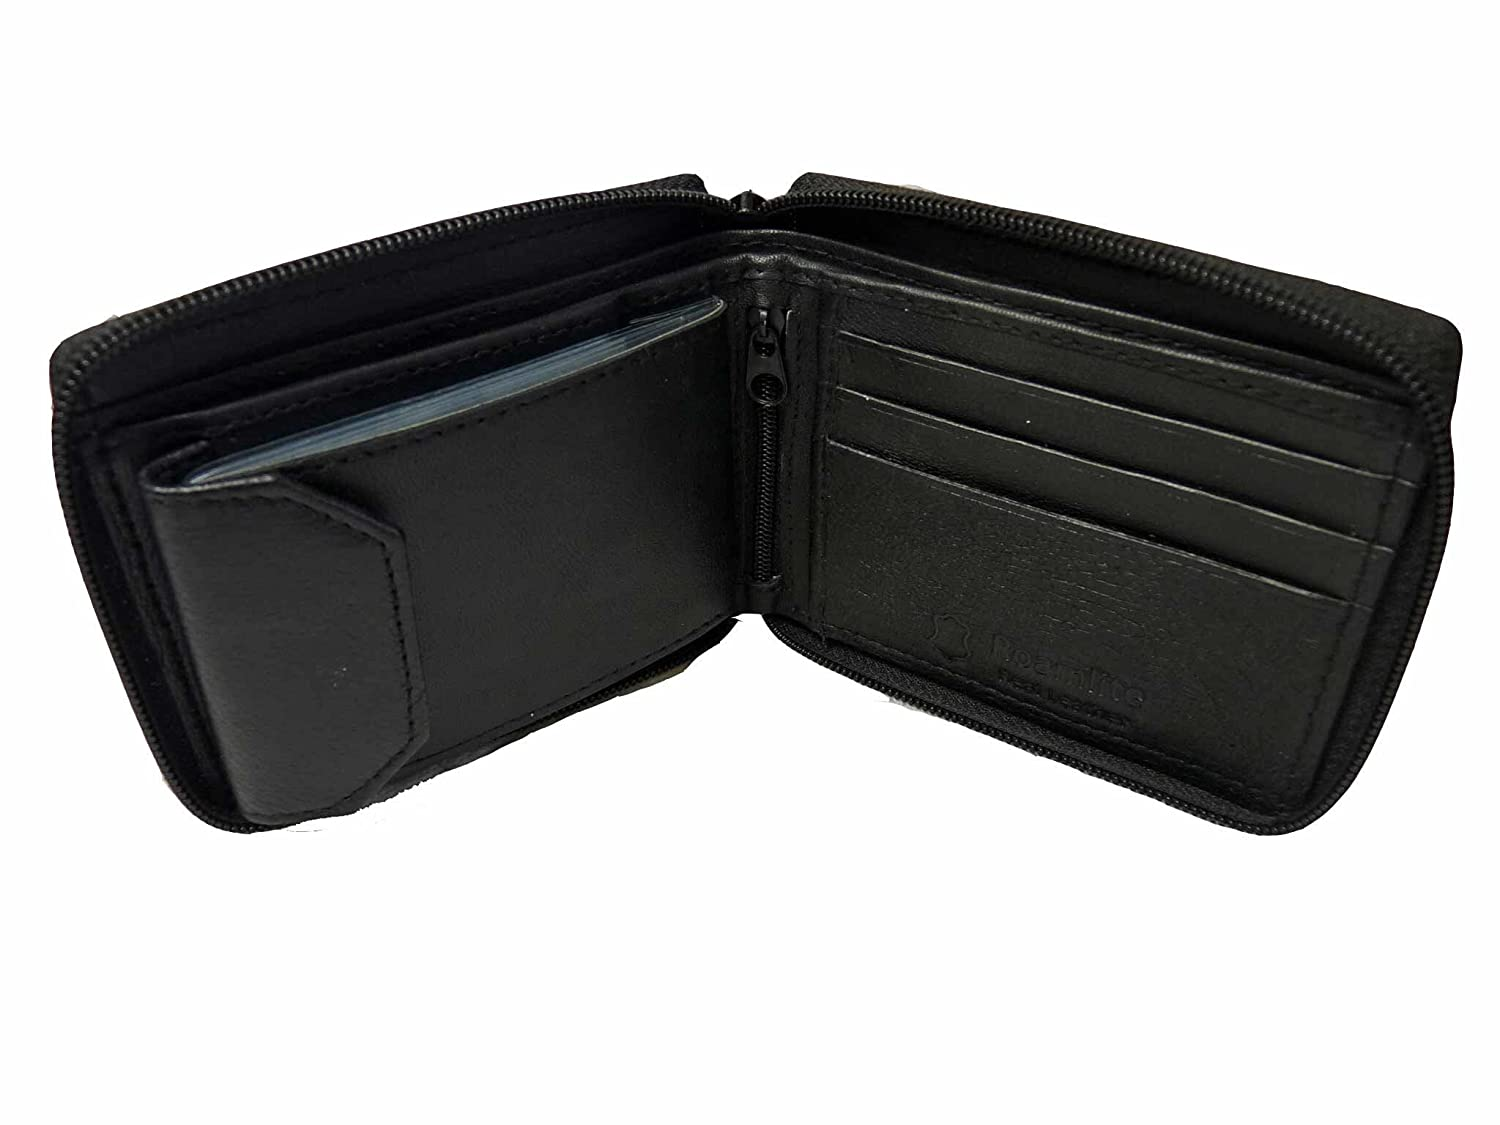 SALE Mens Mans Zip Around Wallet Real leather Soft Leather Zipped Wallets R184